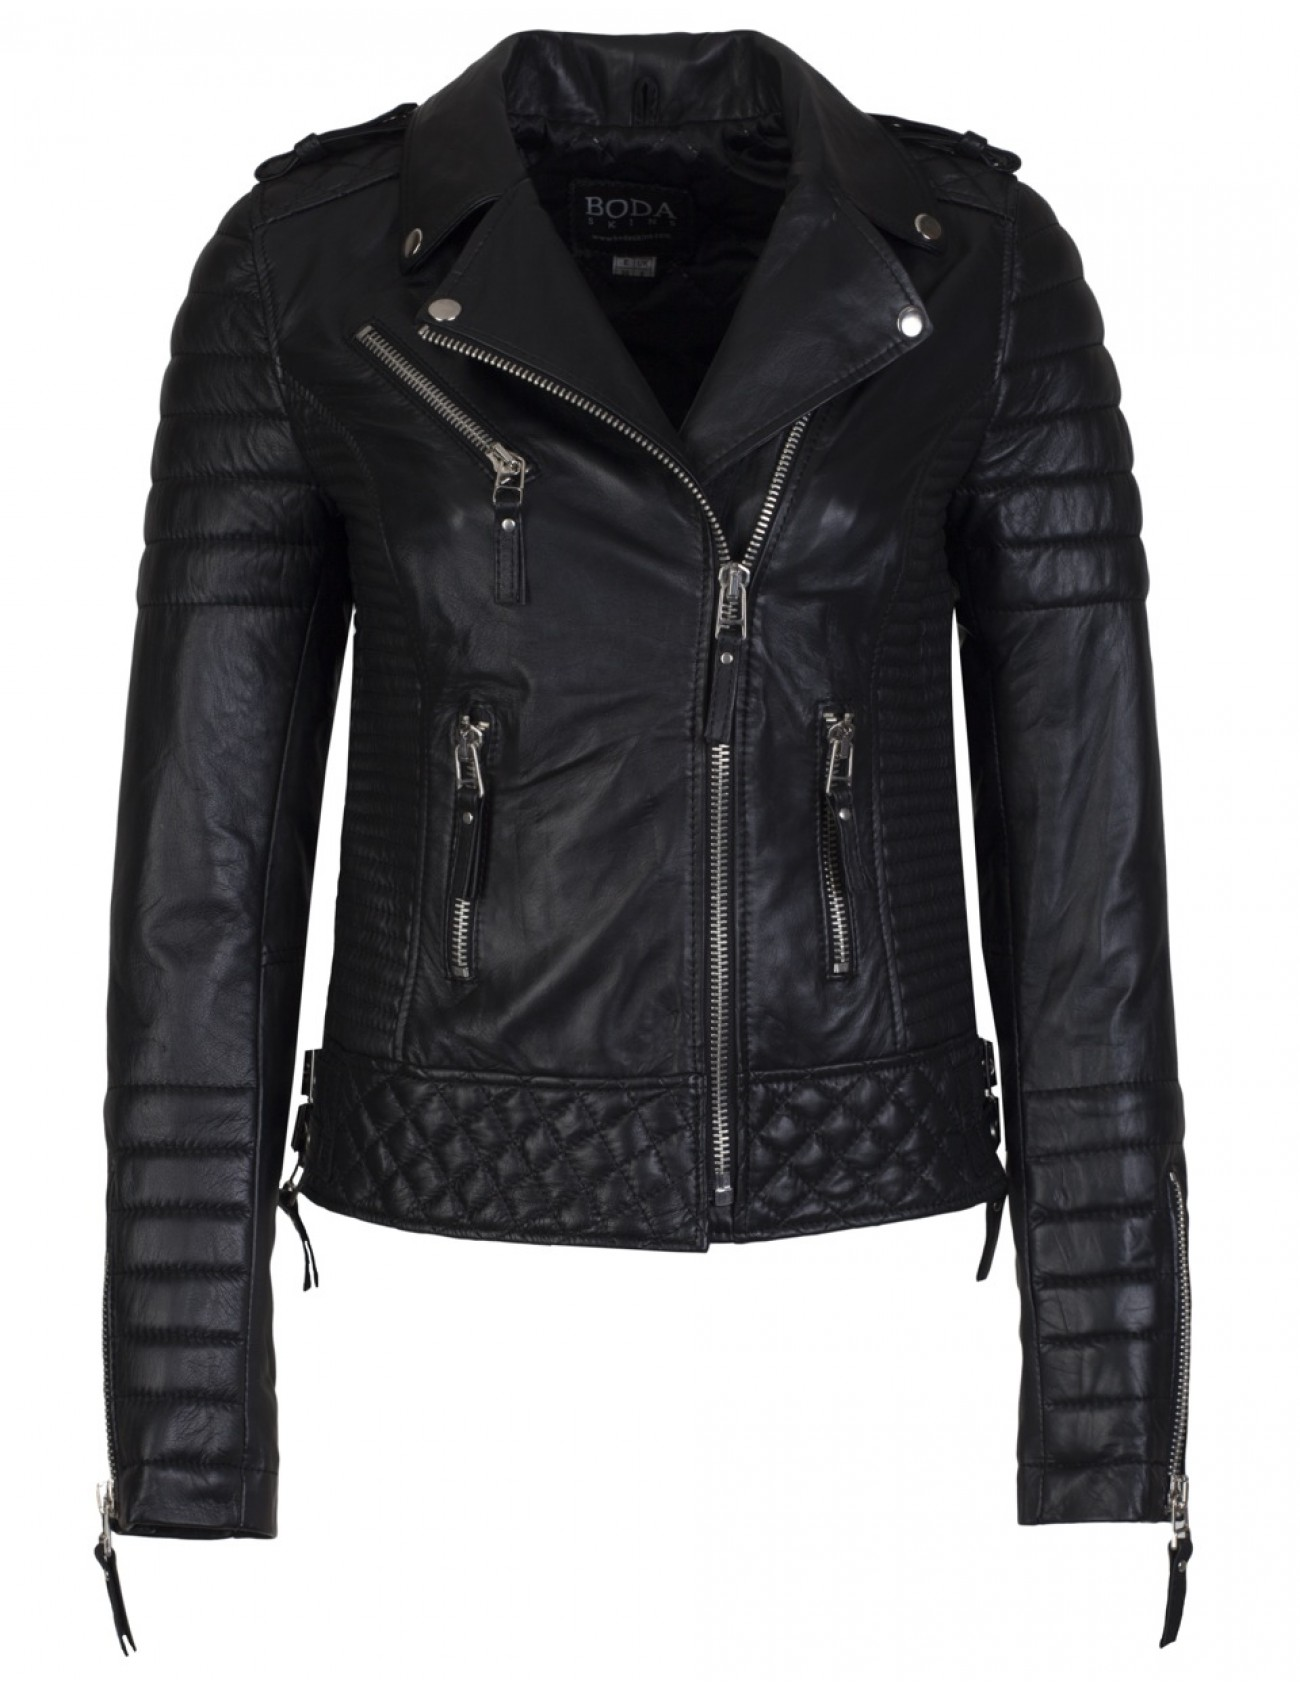 Define your style statement in ladies biker jackets. Exude chic leather zip through designs. Next day delivery & free returns available. Black PU Biker Jacket. £ Aubergine Suedette Biker Jacket. £ Indigo Suedette Biker Jacket. £ Black Lipsy Leather Biker Jacket. £ Grey Suedette Waterfall Jacket.